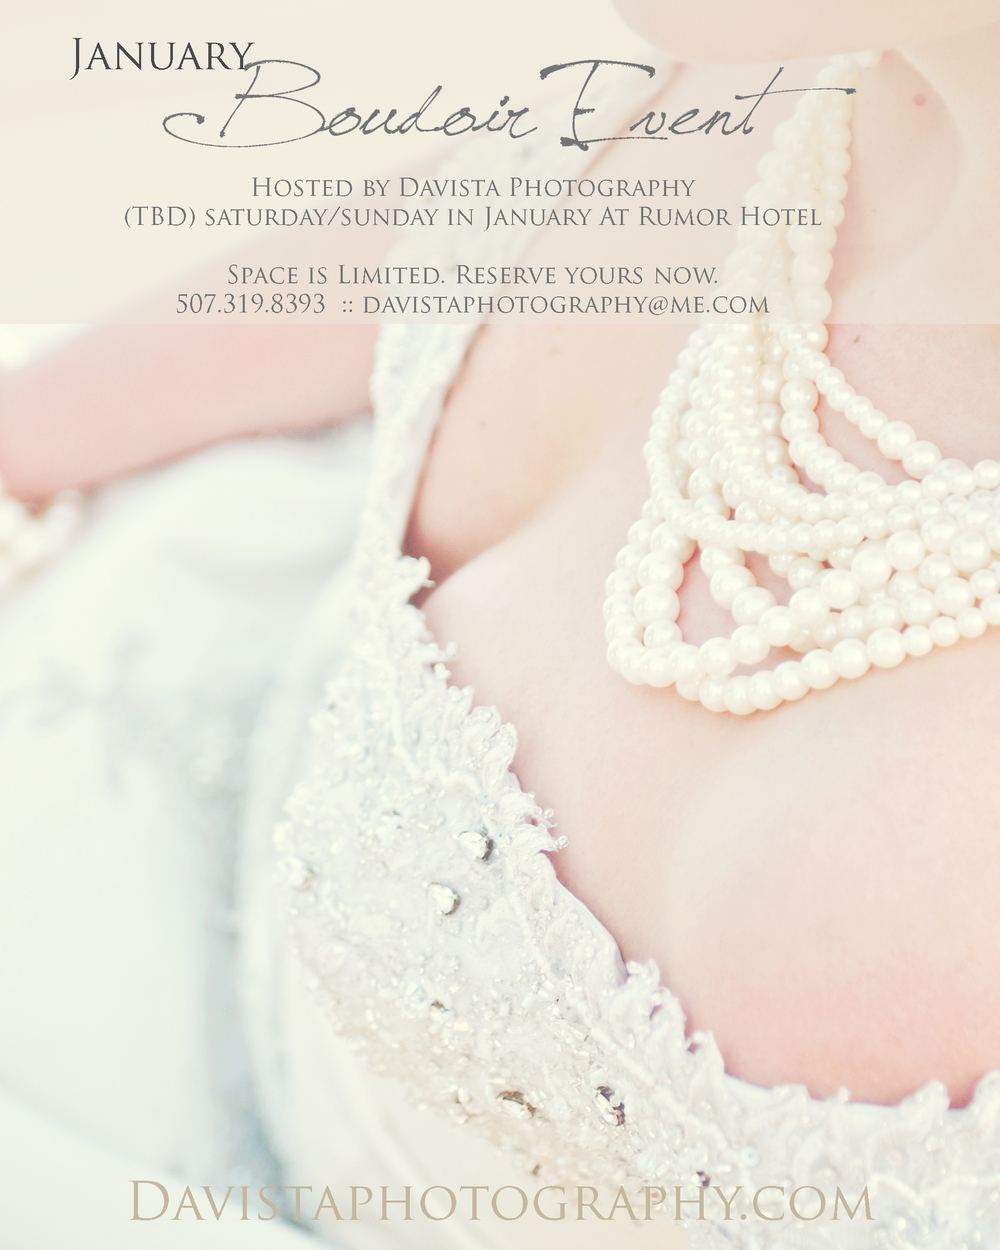 boudoir photography event